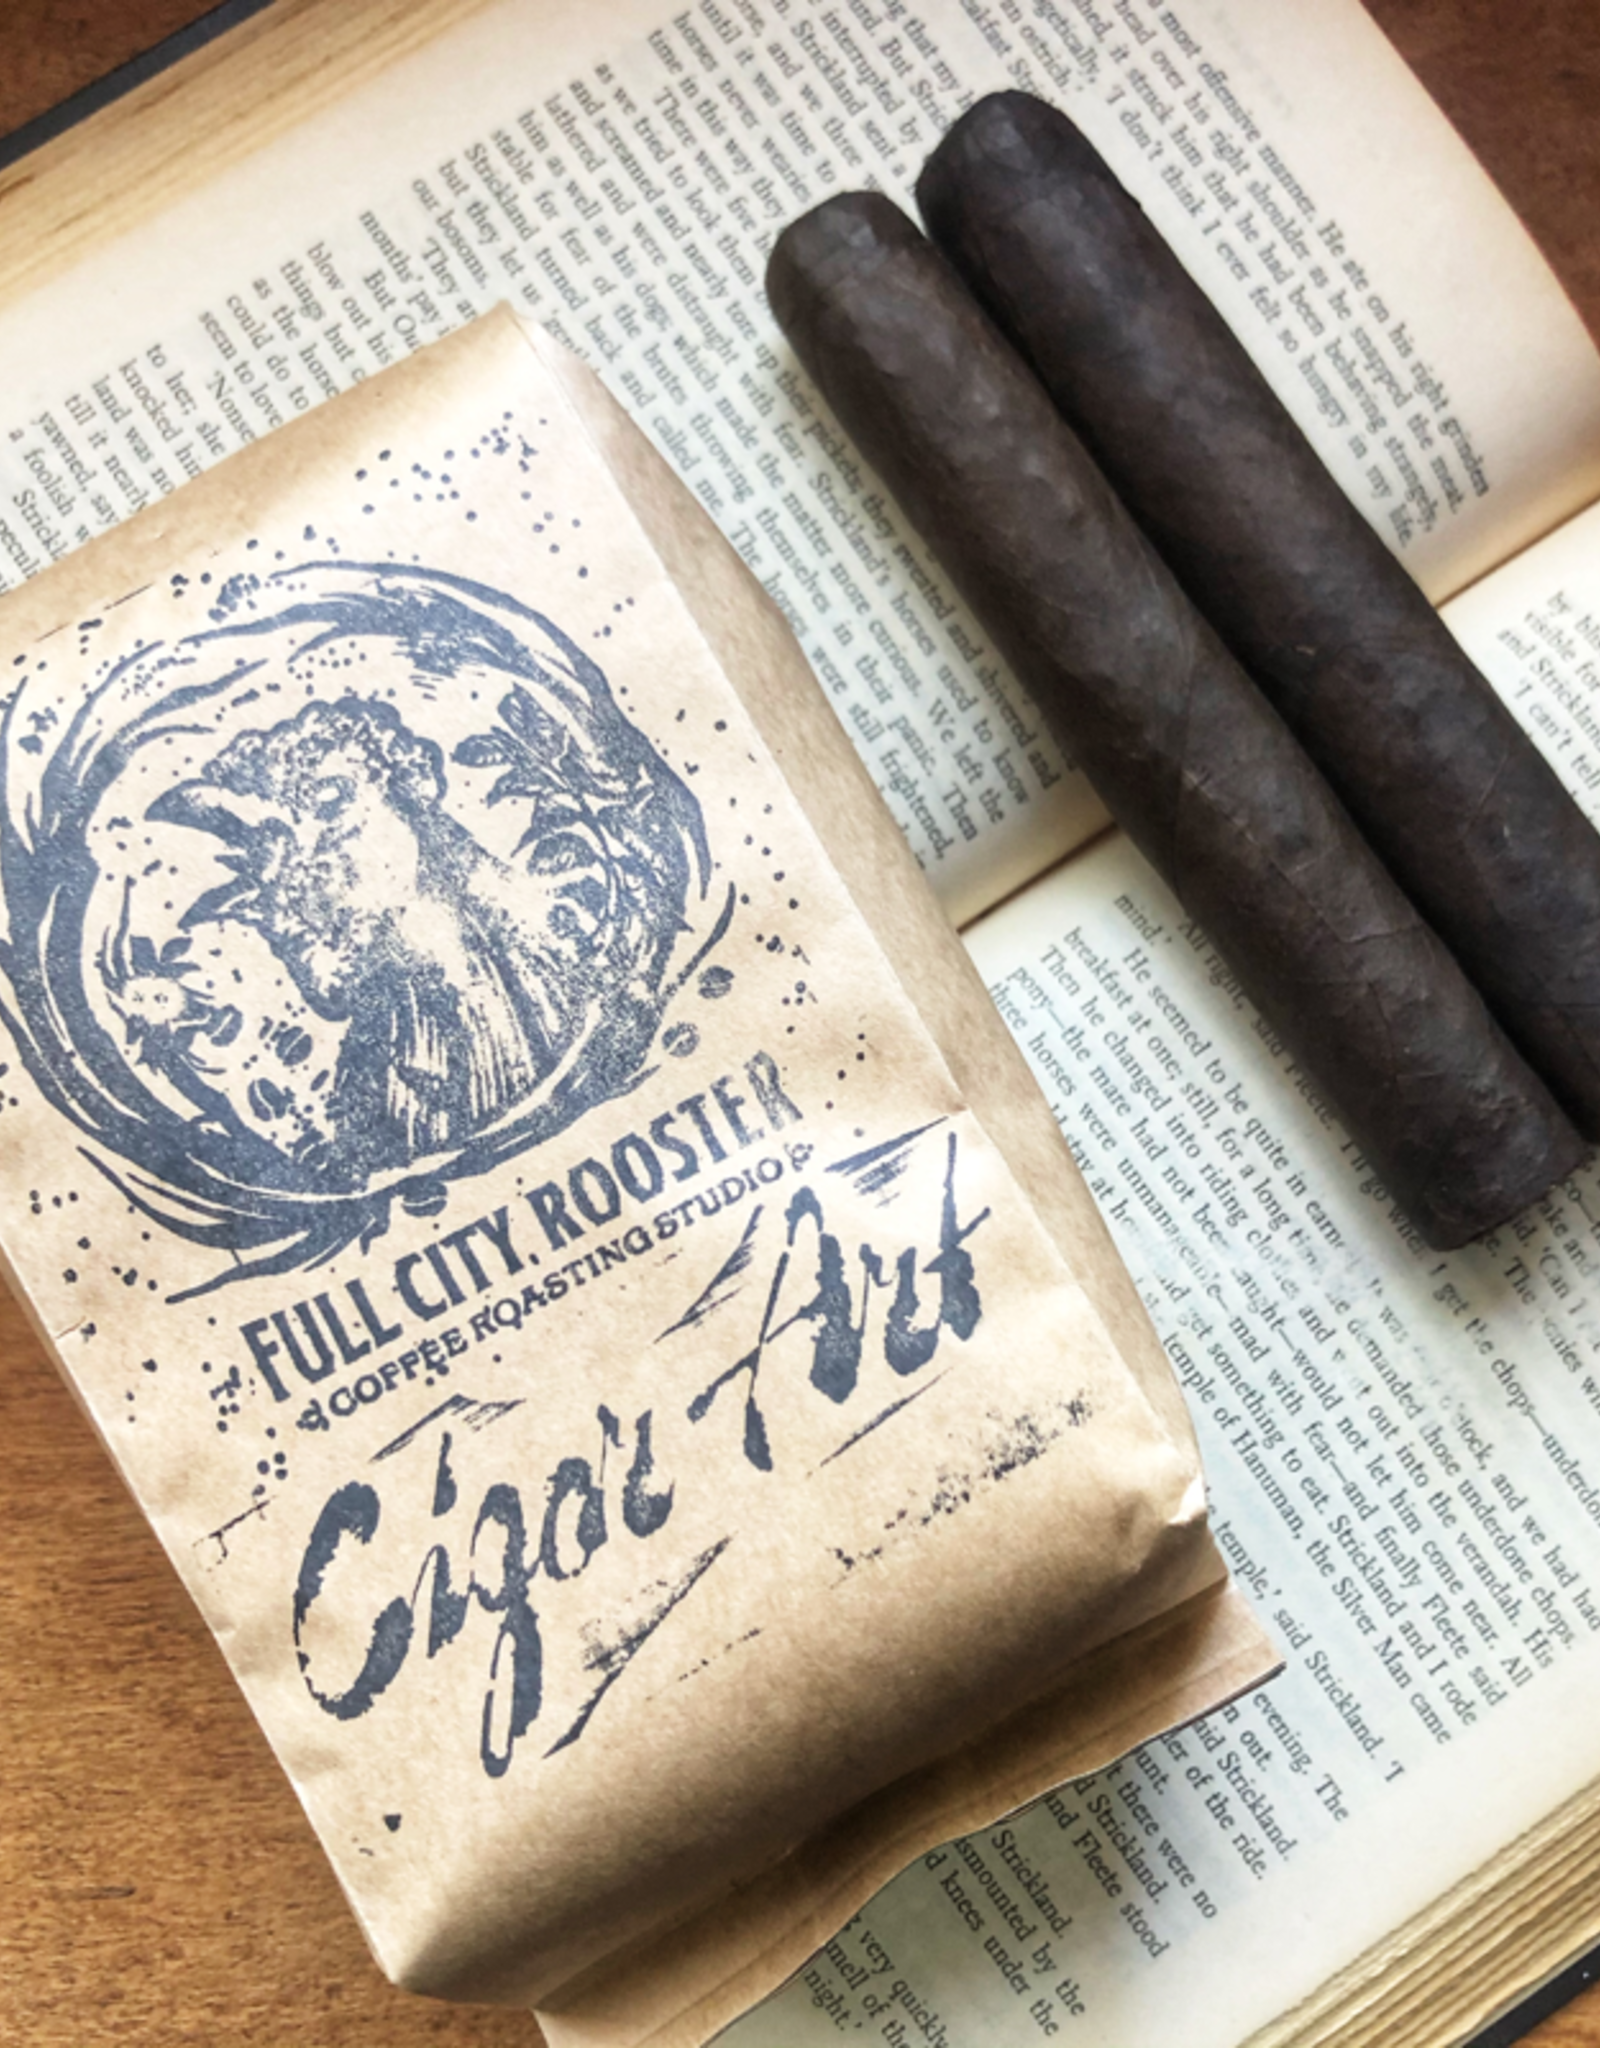 Cigar Art Full City Rooster Coffee: Cigar Art Exclusive 12oz Whole Bean + 10 Cliff Jumper Robusto 5 x 50 Singles